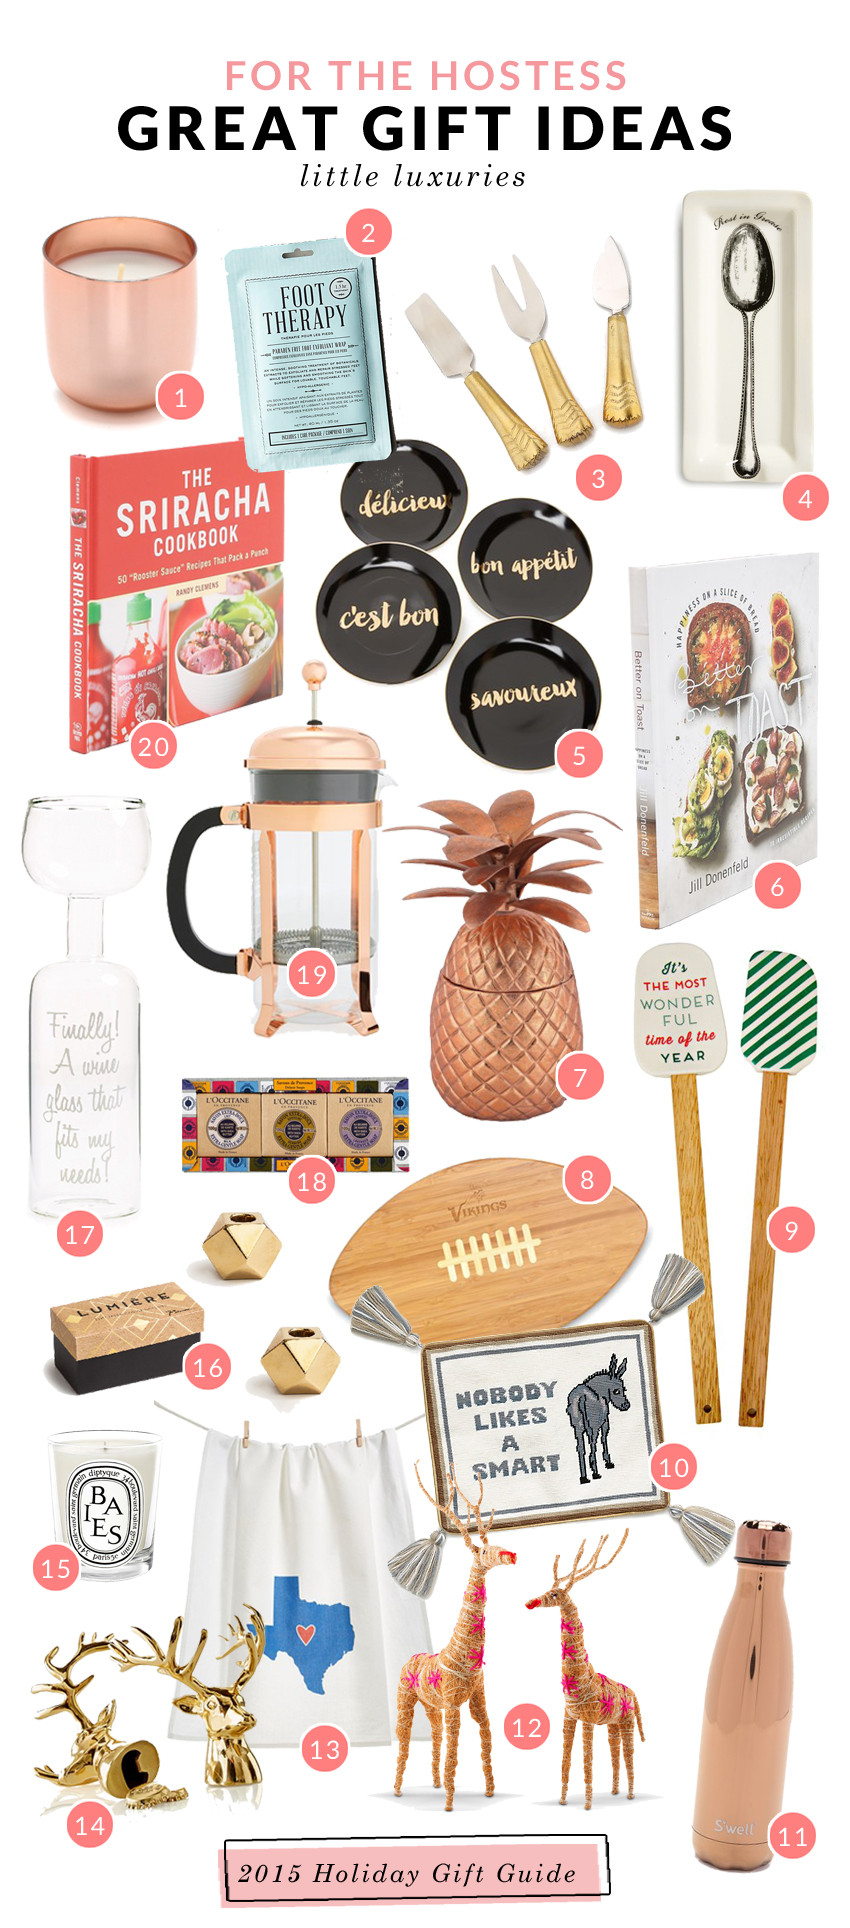 Christmas Hostess Gift Ideas  Holiday Gift Guide Ideas for the Host & Hostess corals